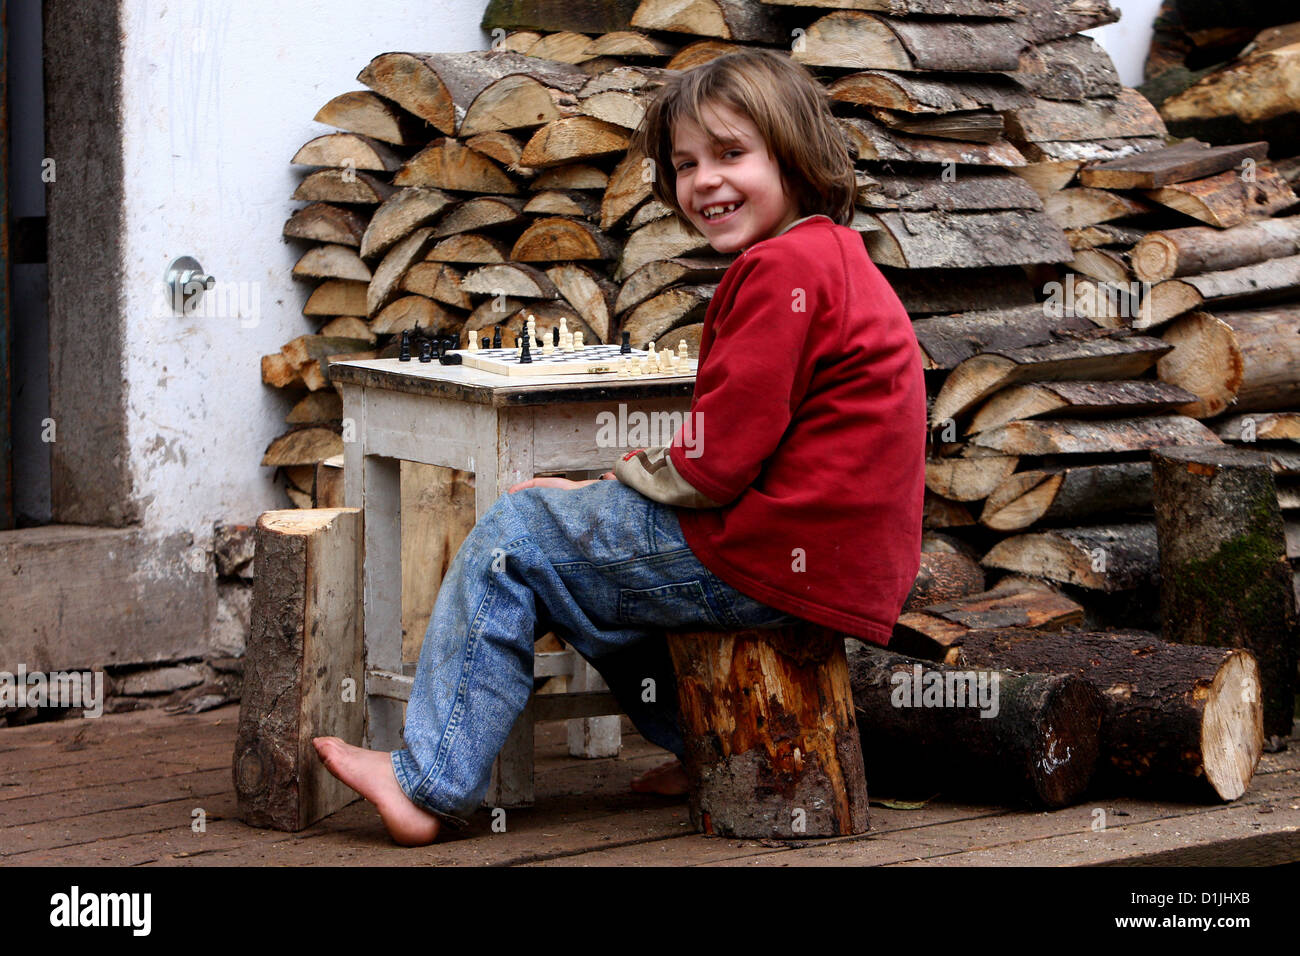 barefoot girl sitting on a wooden log and playing chess - Stock Image